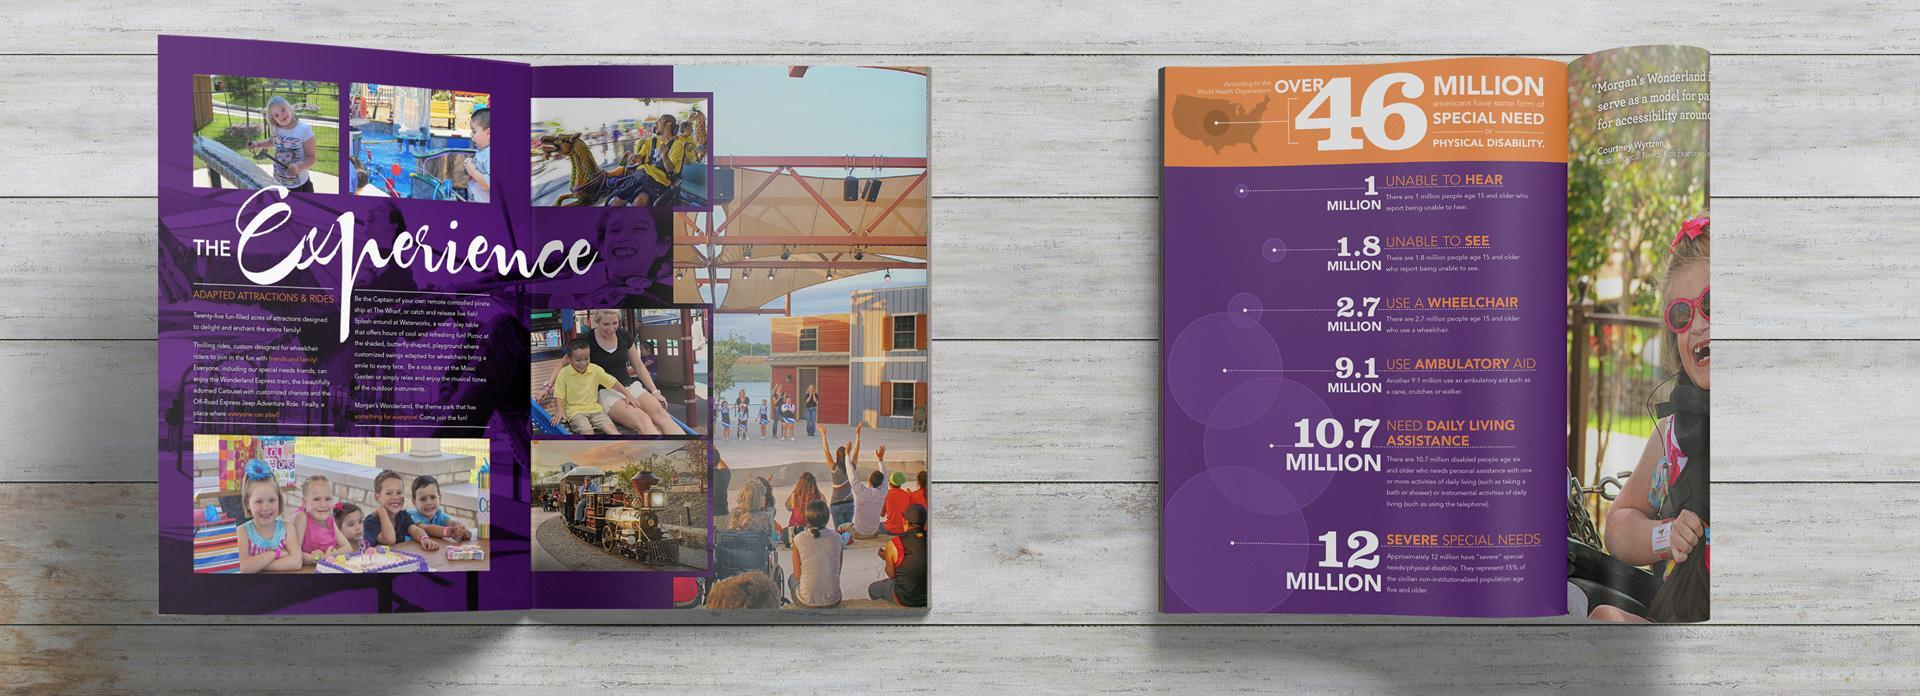 Morgan's Wonderland San Antonio Graphic Design Brochure Design Marketing Collateral